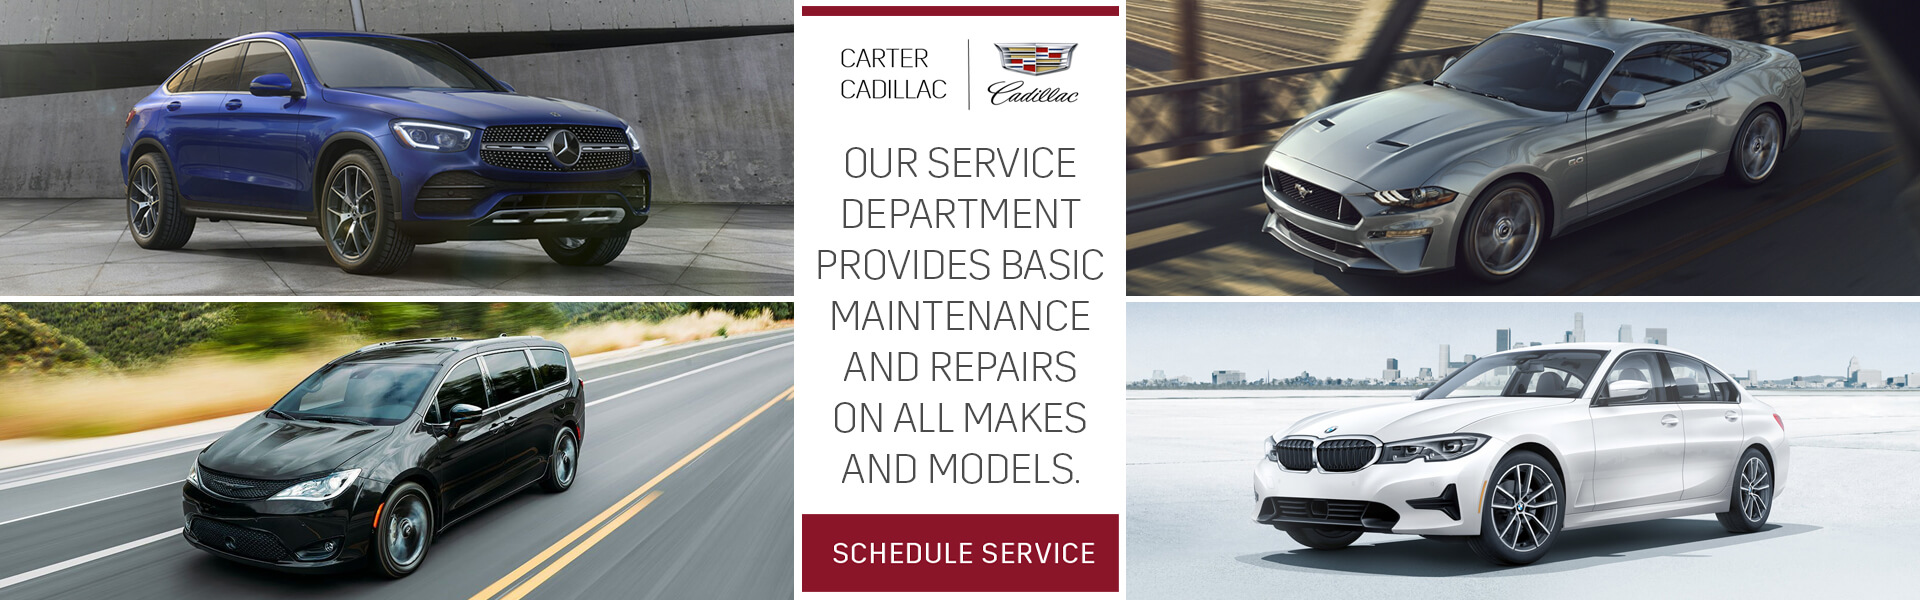 New & Used Cadillac Dealer | Serving Airdrie, Calgary ...